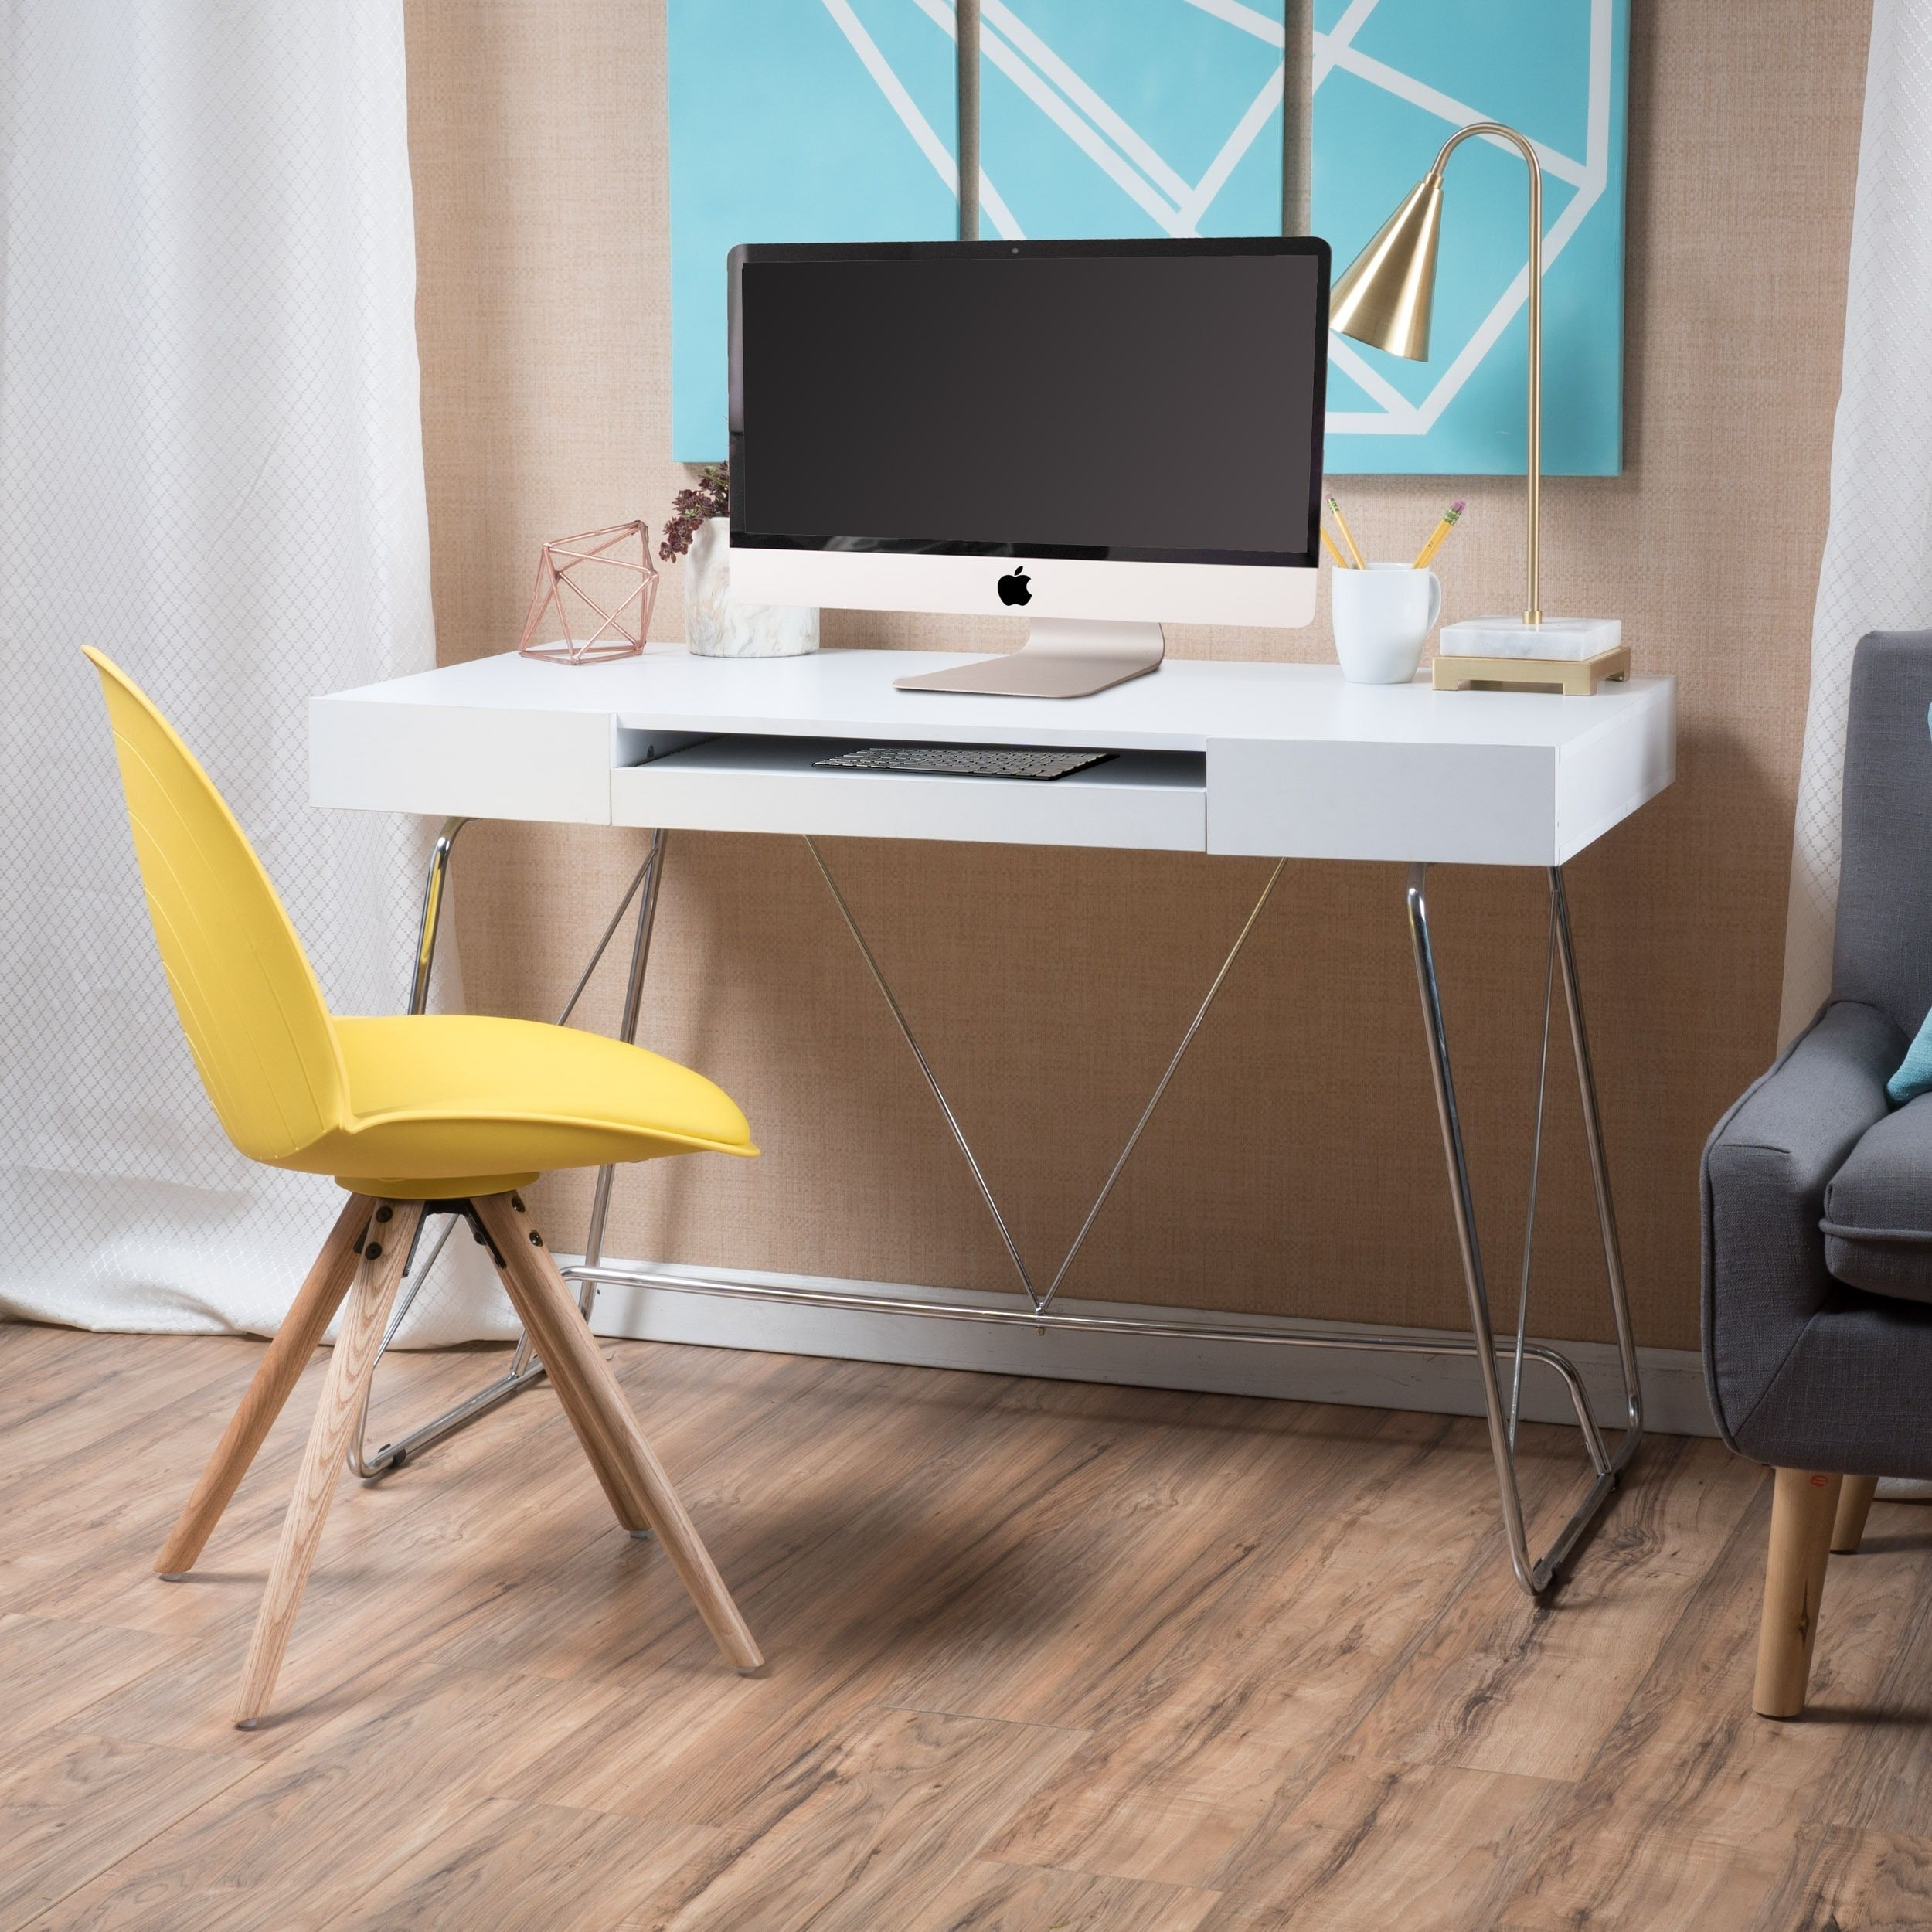 com furniture shipping of lovely office fice corner shaped l fresh overstock today desk fineboard free home